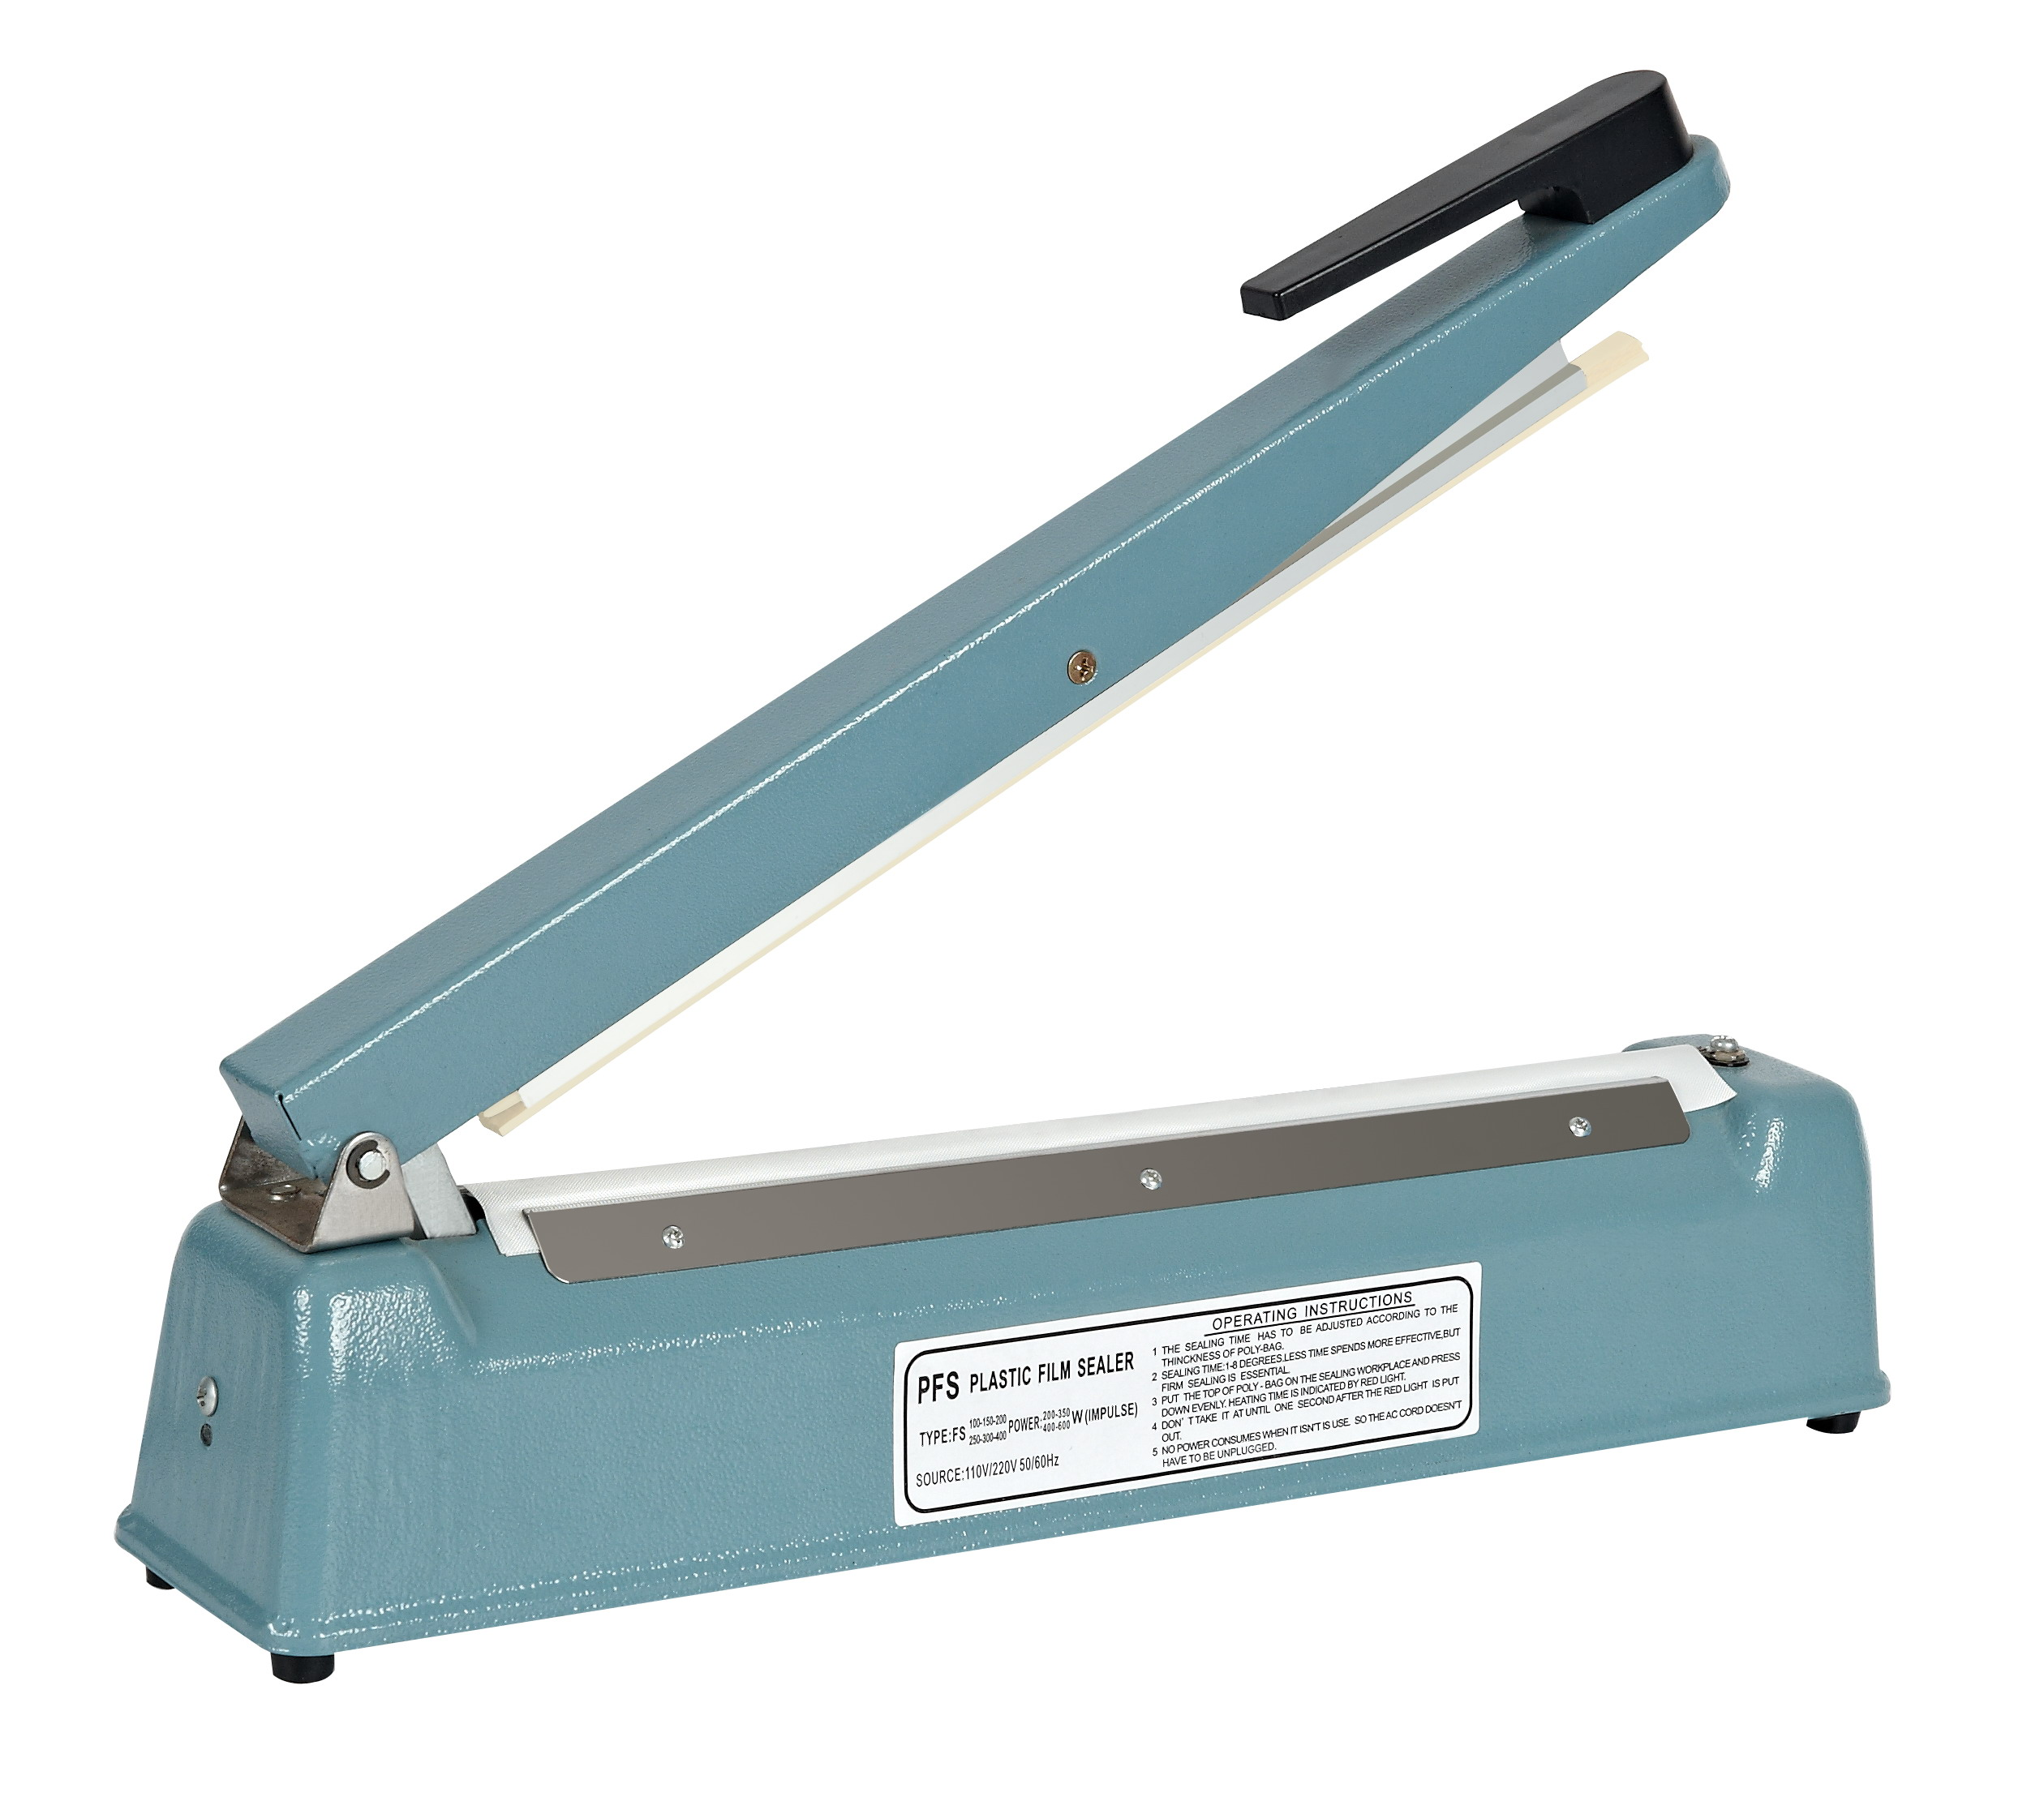 <b>Iron Body Manual Impulse Heat Sealer FS-300</b>